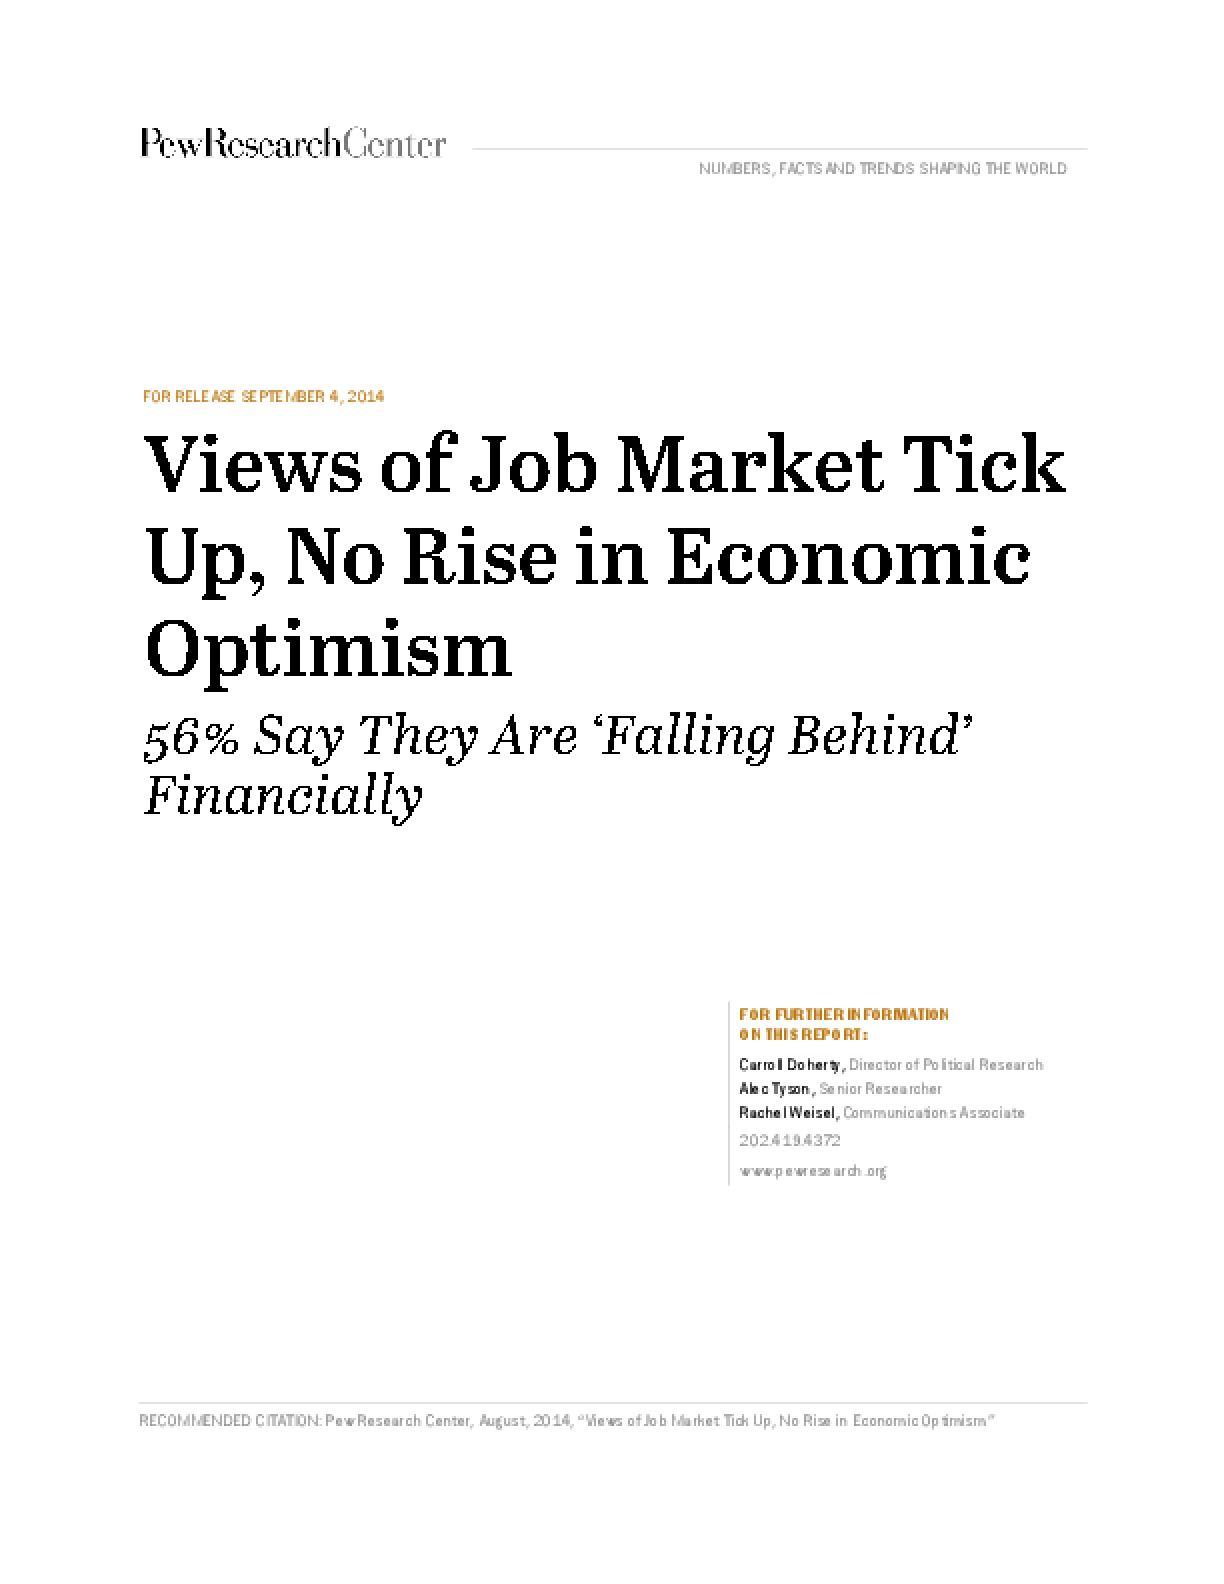 Views of Job Market Tick Up, No Rise in Economic Optimism